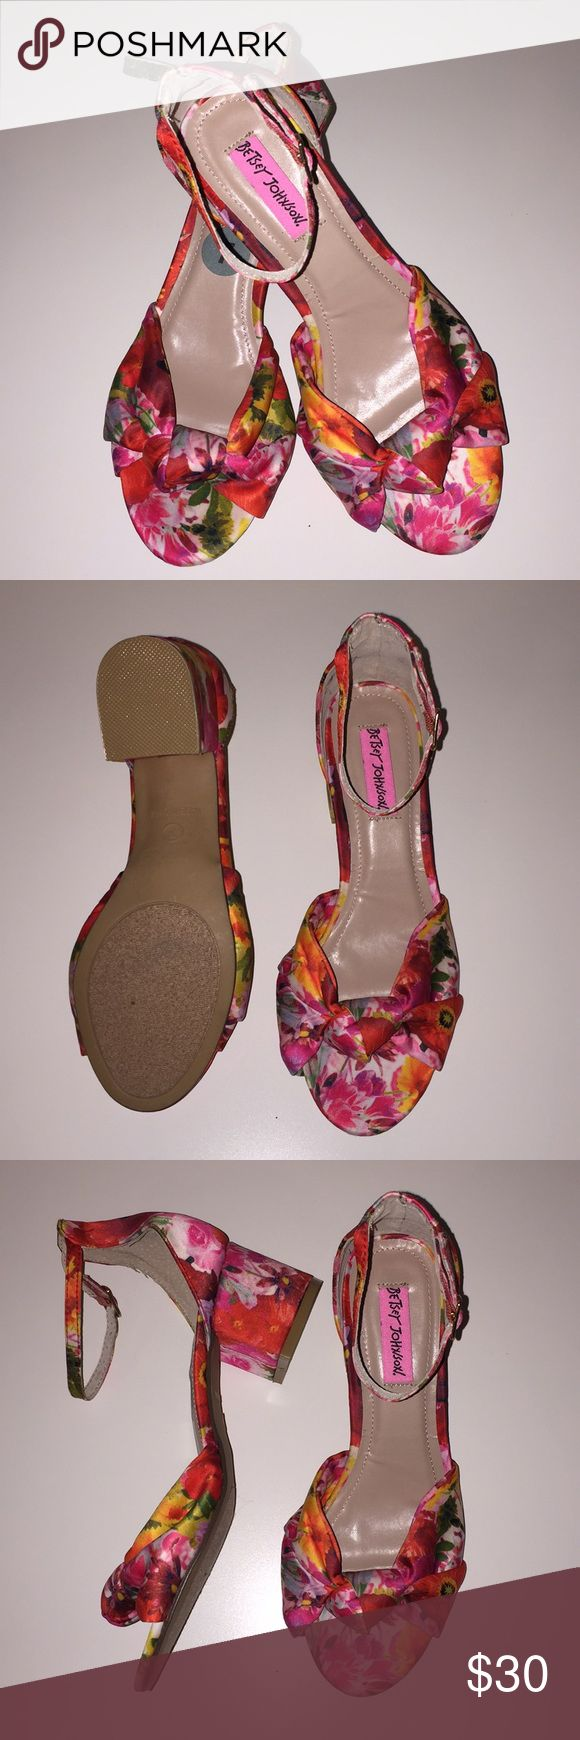 Betsy Johnson floral heel sandals NEW SZ 7 Gorgeous heel sandal strap ankle the whole shoe is bright color Betsy Johnson fabric. Lined in leather very comfortable with the padded footbed. Betsy Johnson Shoes Sandals